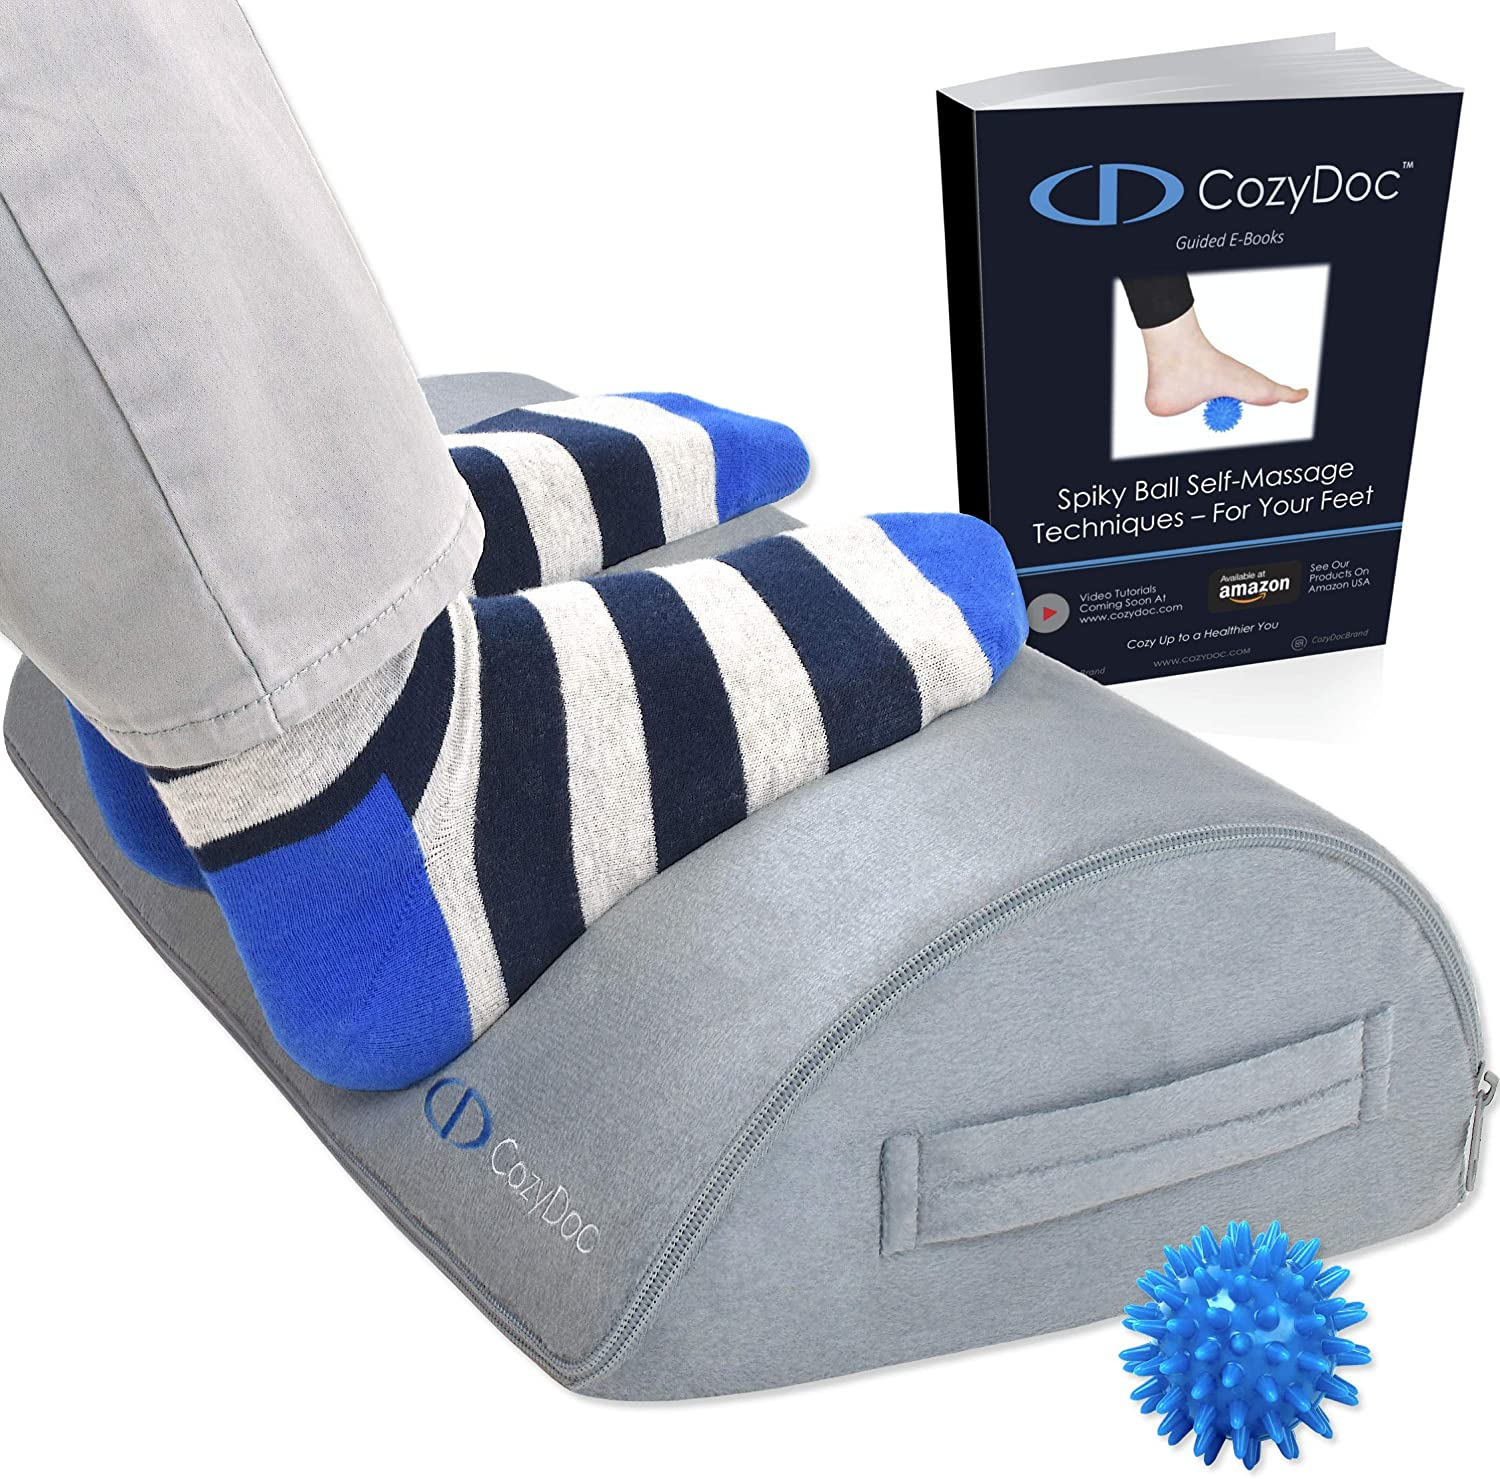 CozyDoc Ergonomic Foot Rest Cushion Under Desk + Massage Ball | The Most Comfortable Footrest for Home, Office, Travel | Doctor Designed Orthopedic Foam for Feet, Knee, Back Pain Relief?Gray?